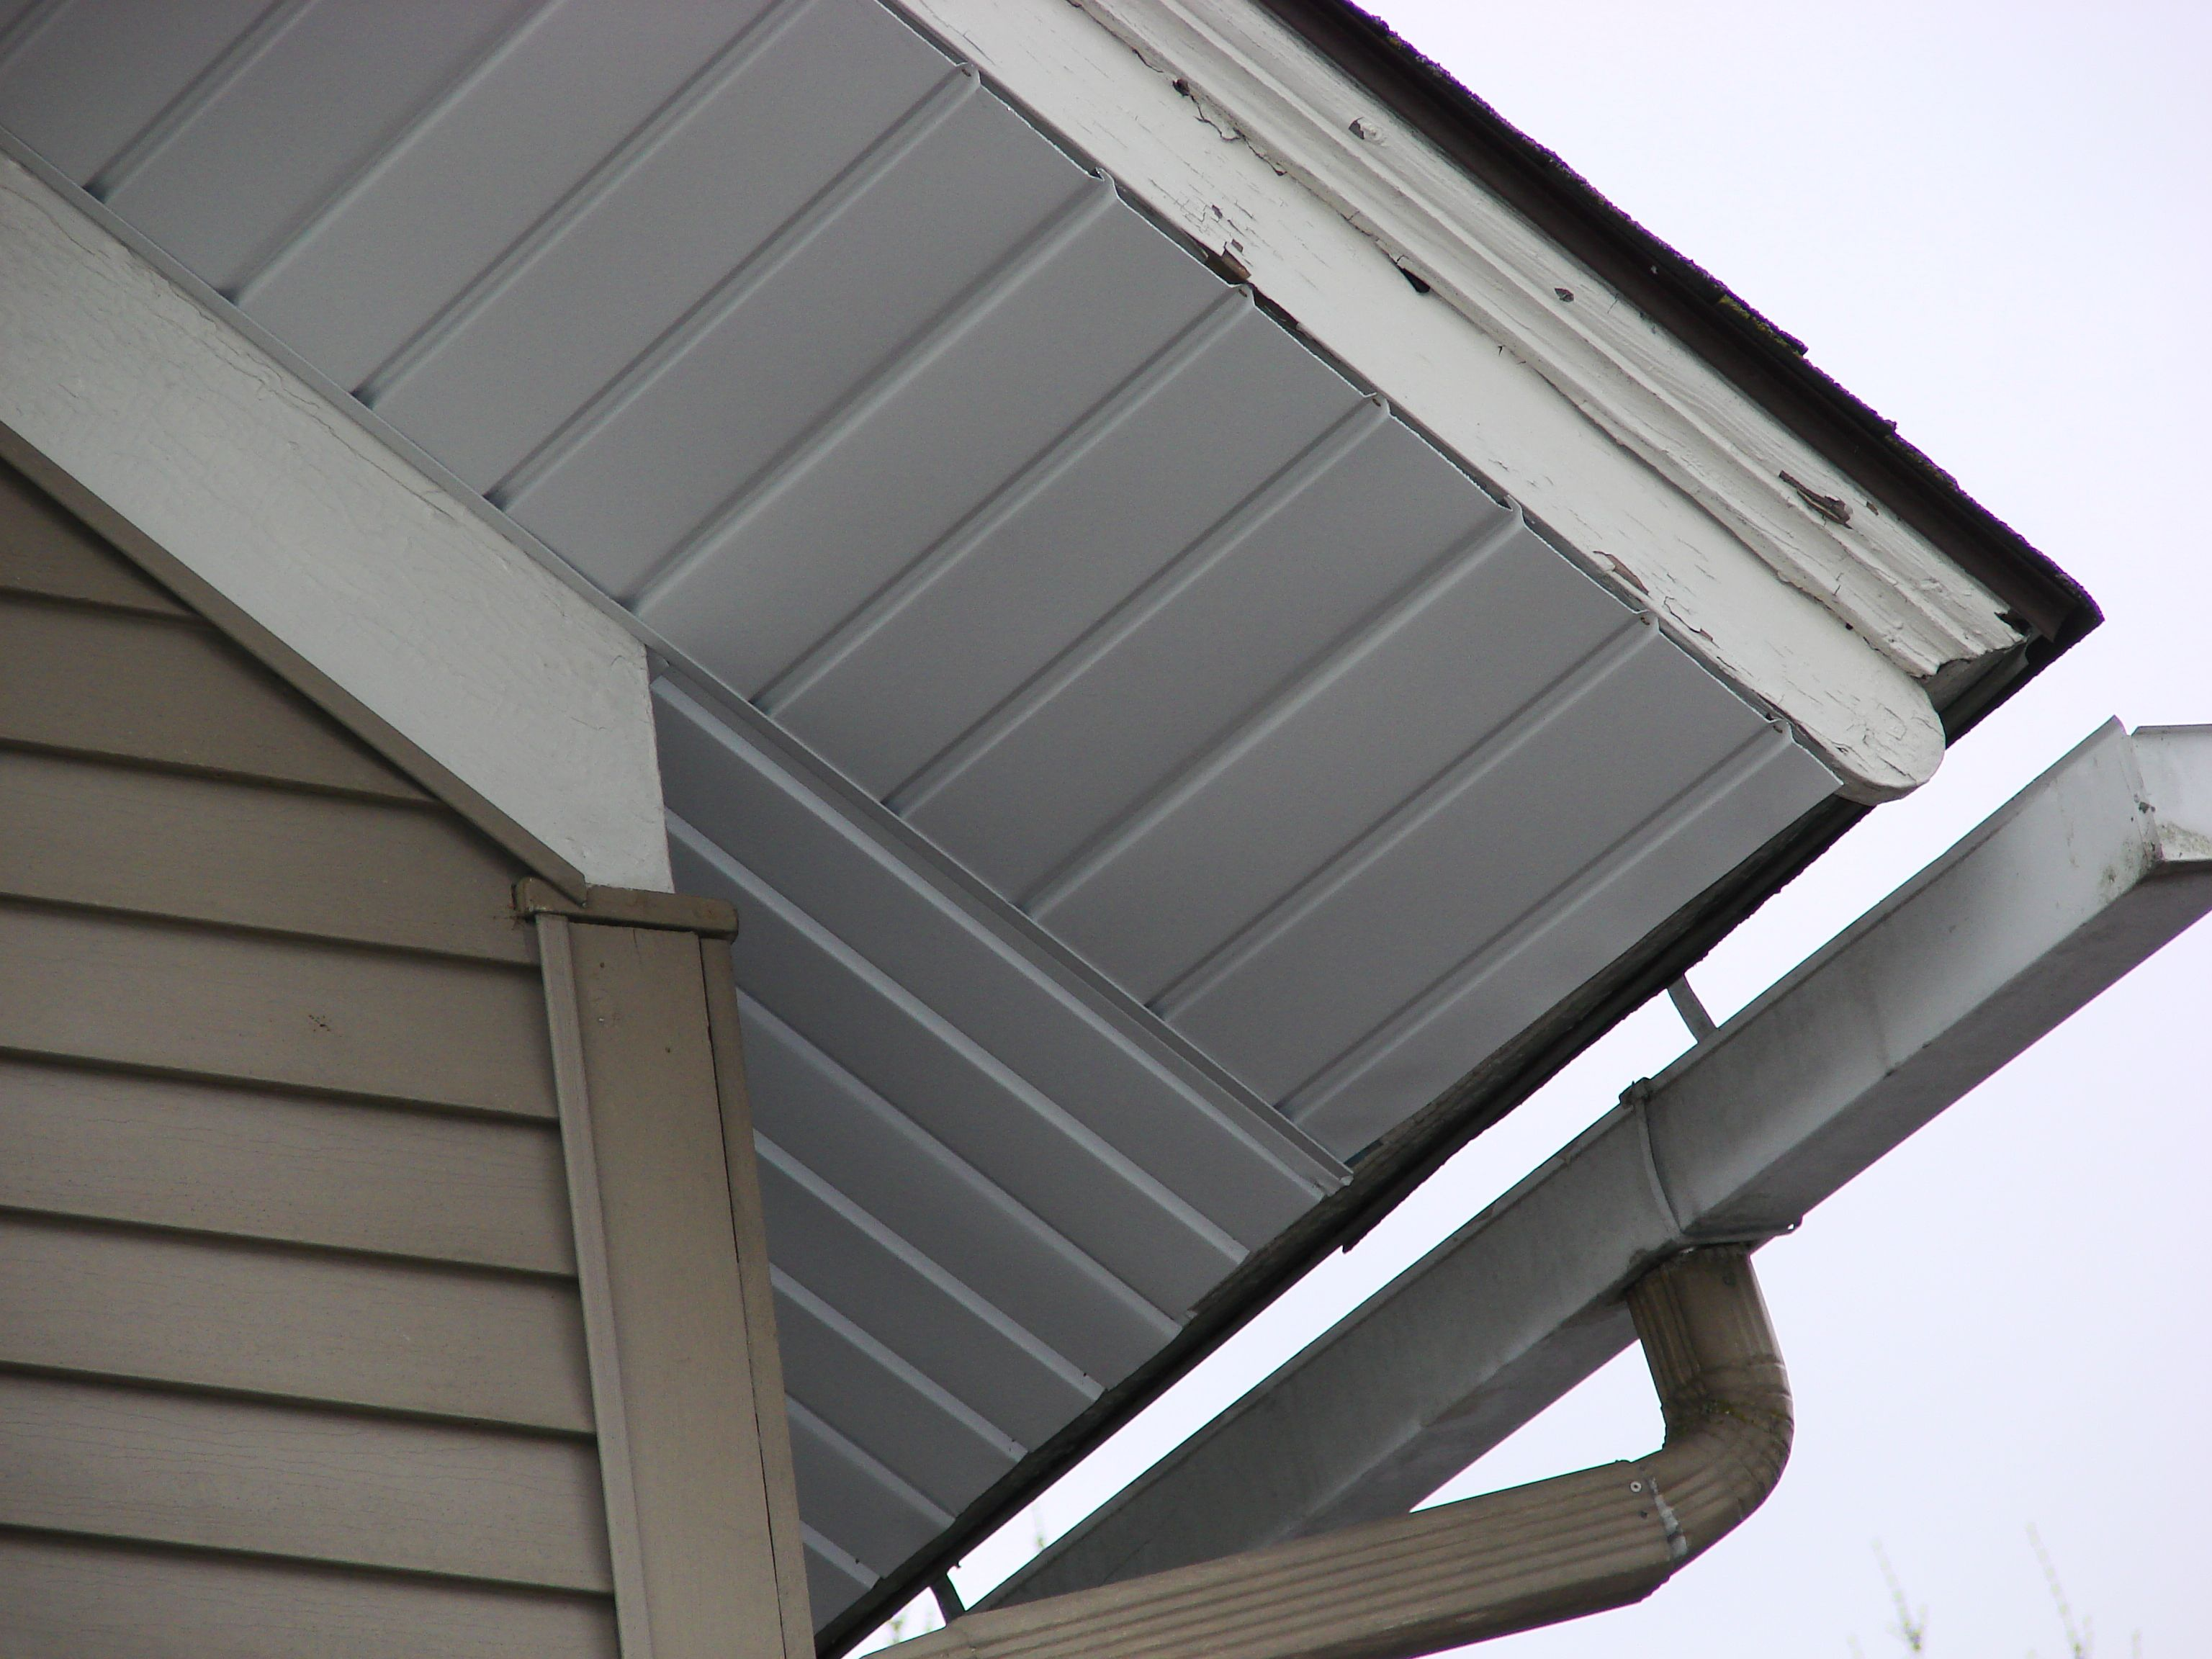 Inspiring Soffit And Fascia And Shiplap Siding Also Rain